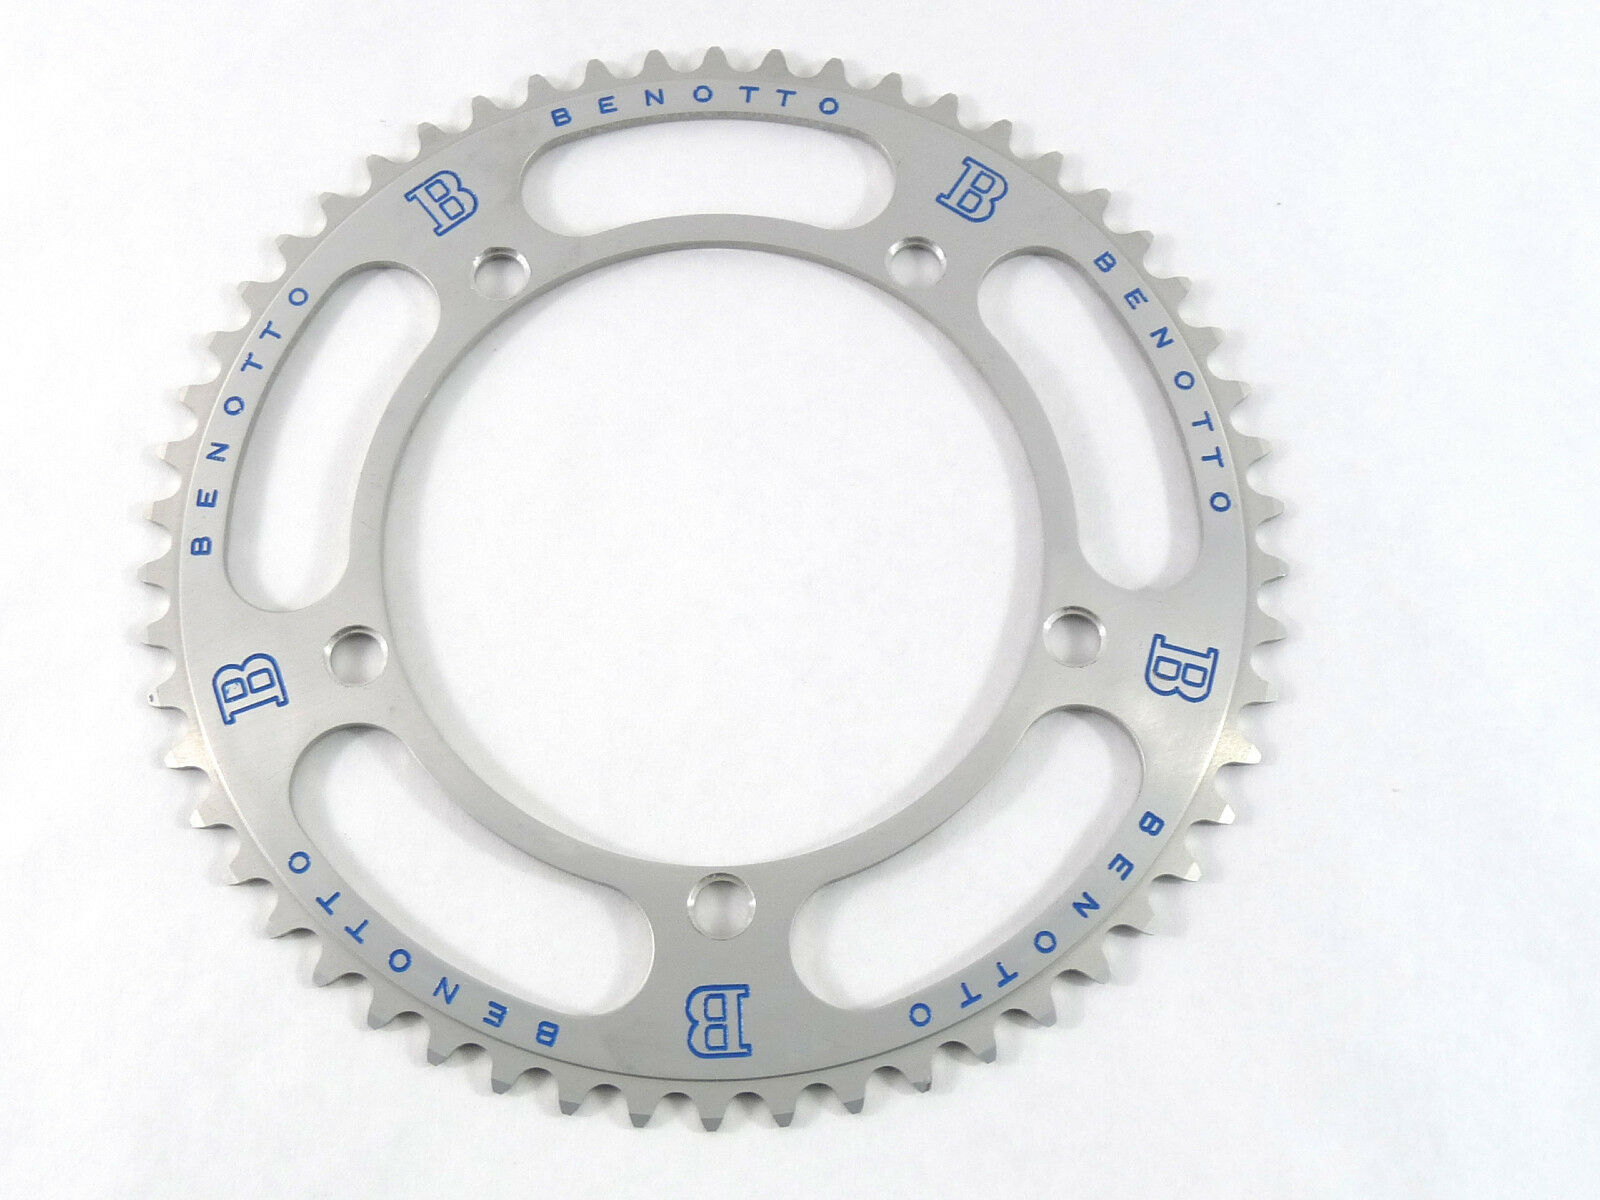 Benotto Pantograph  Chainring 54t 144 BCD 3 32  Vintage Bike Fits CAMPAGNOLO NOS  shop makes buying and selling